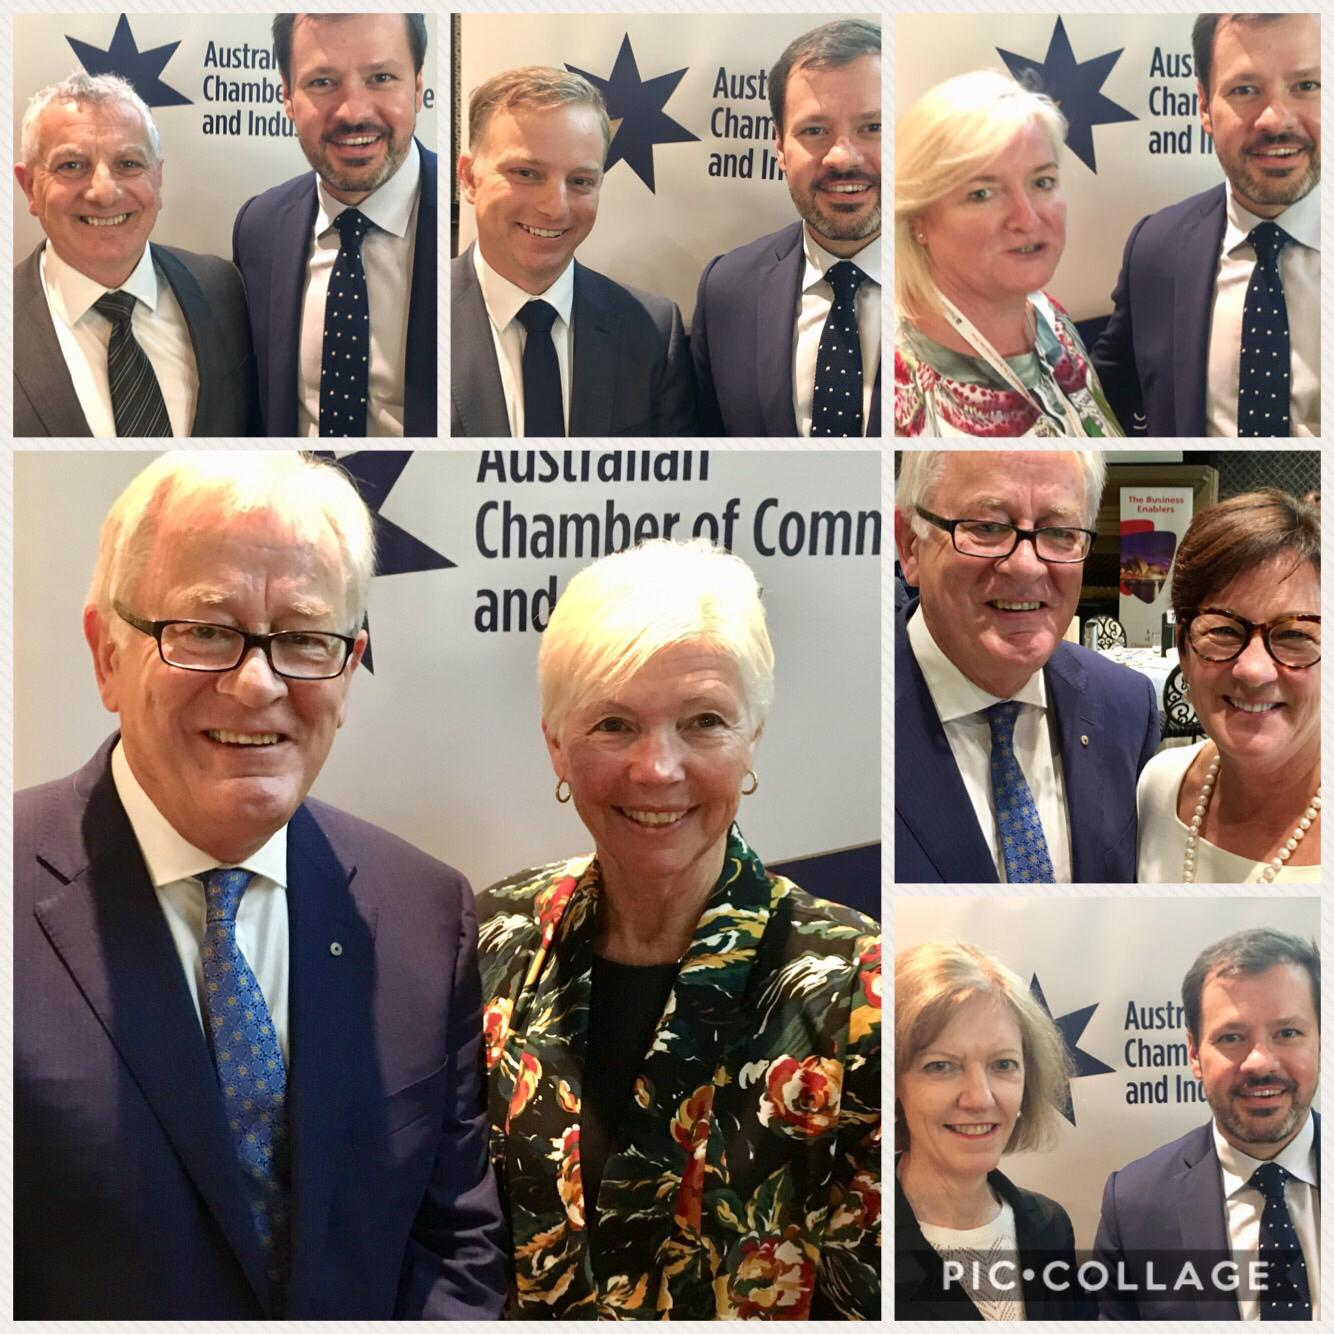 Aust Inst of Chamber and industries 2018-02.jpeg